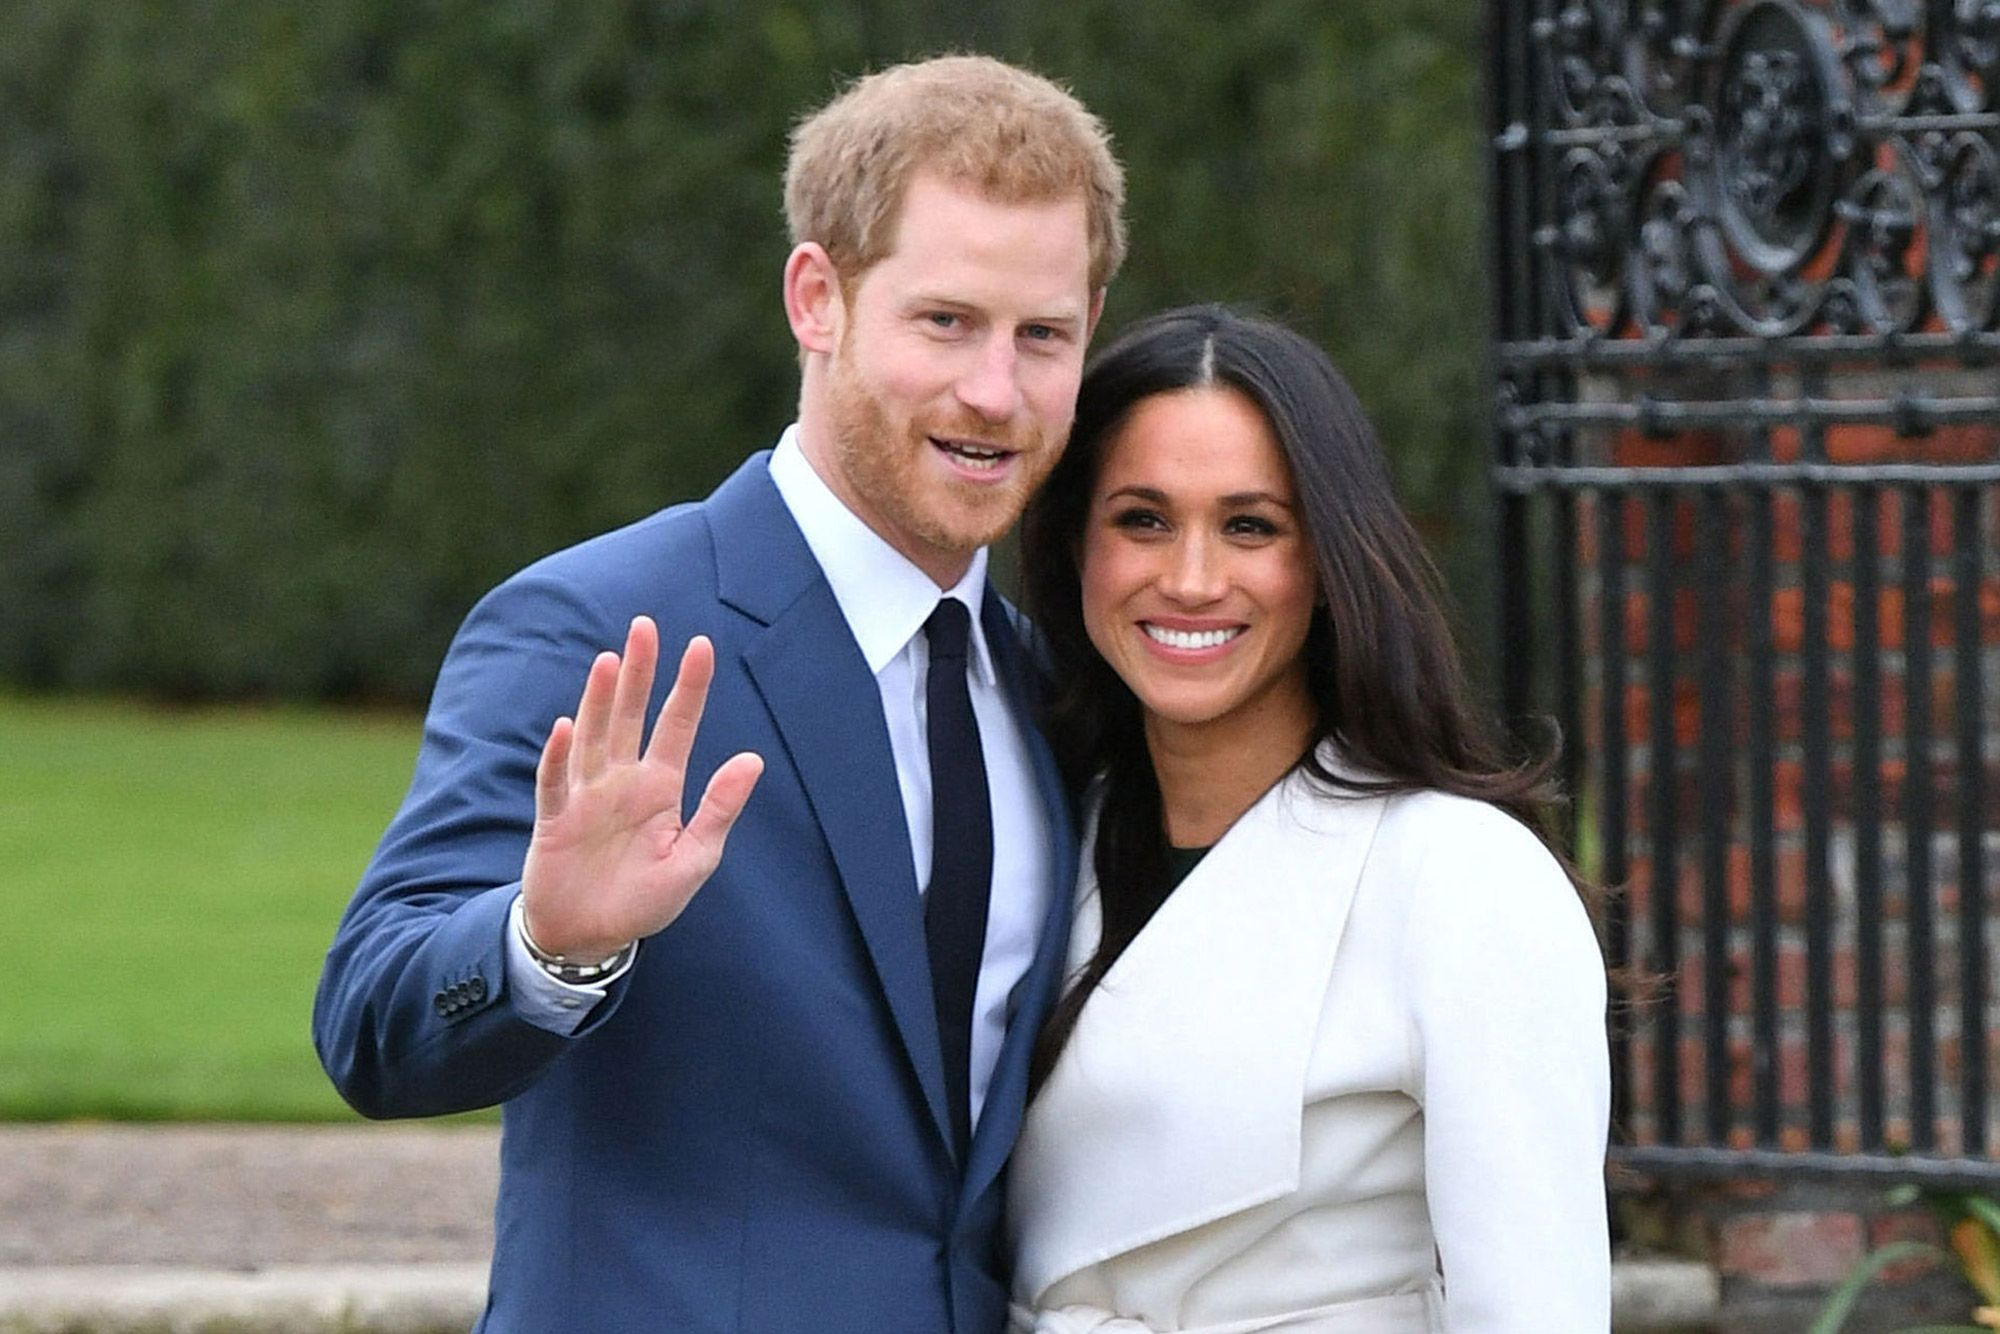 Prince Harry and Meghan Markle quit the royal family